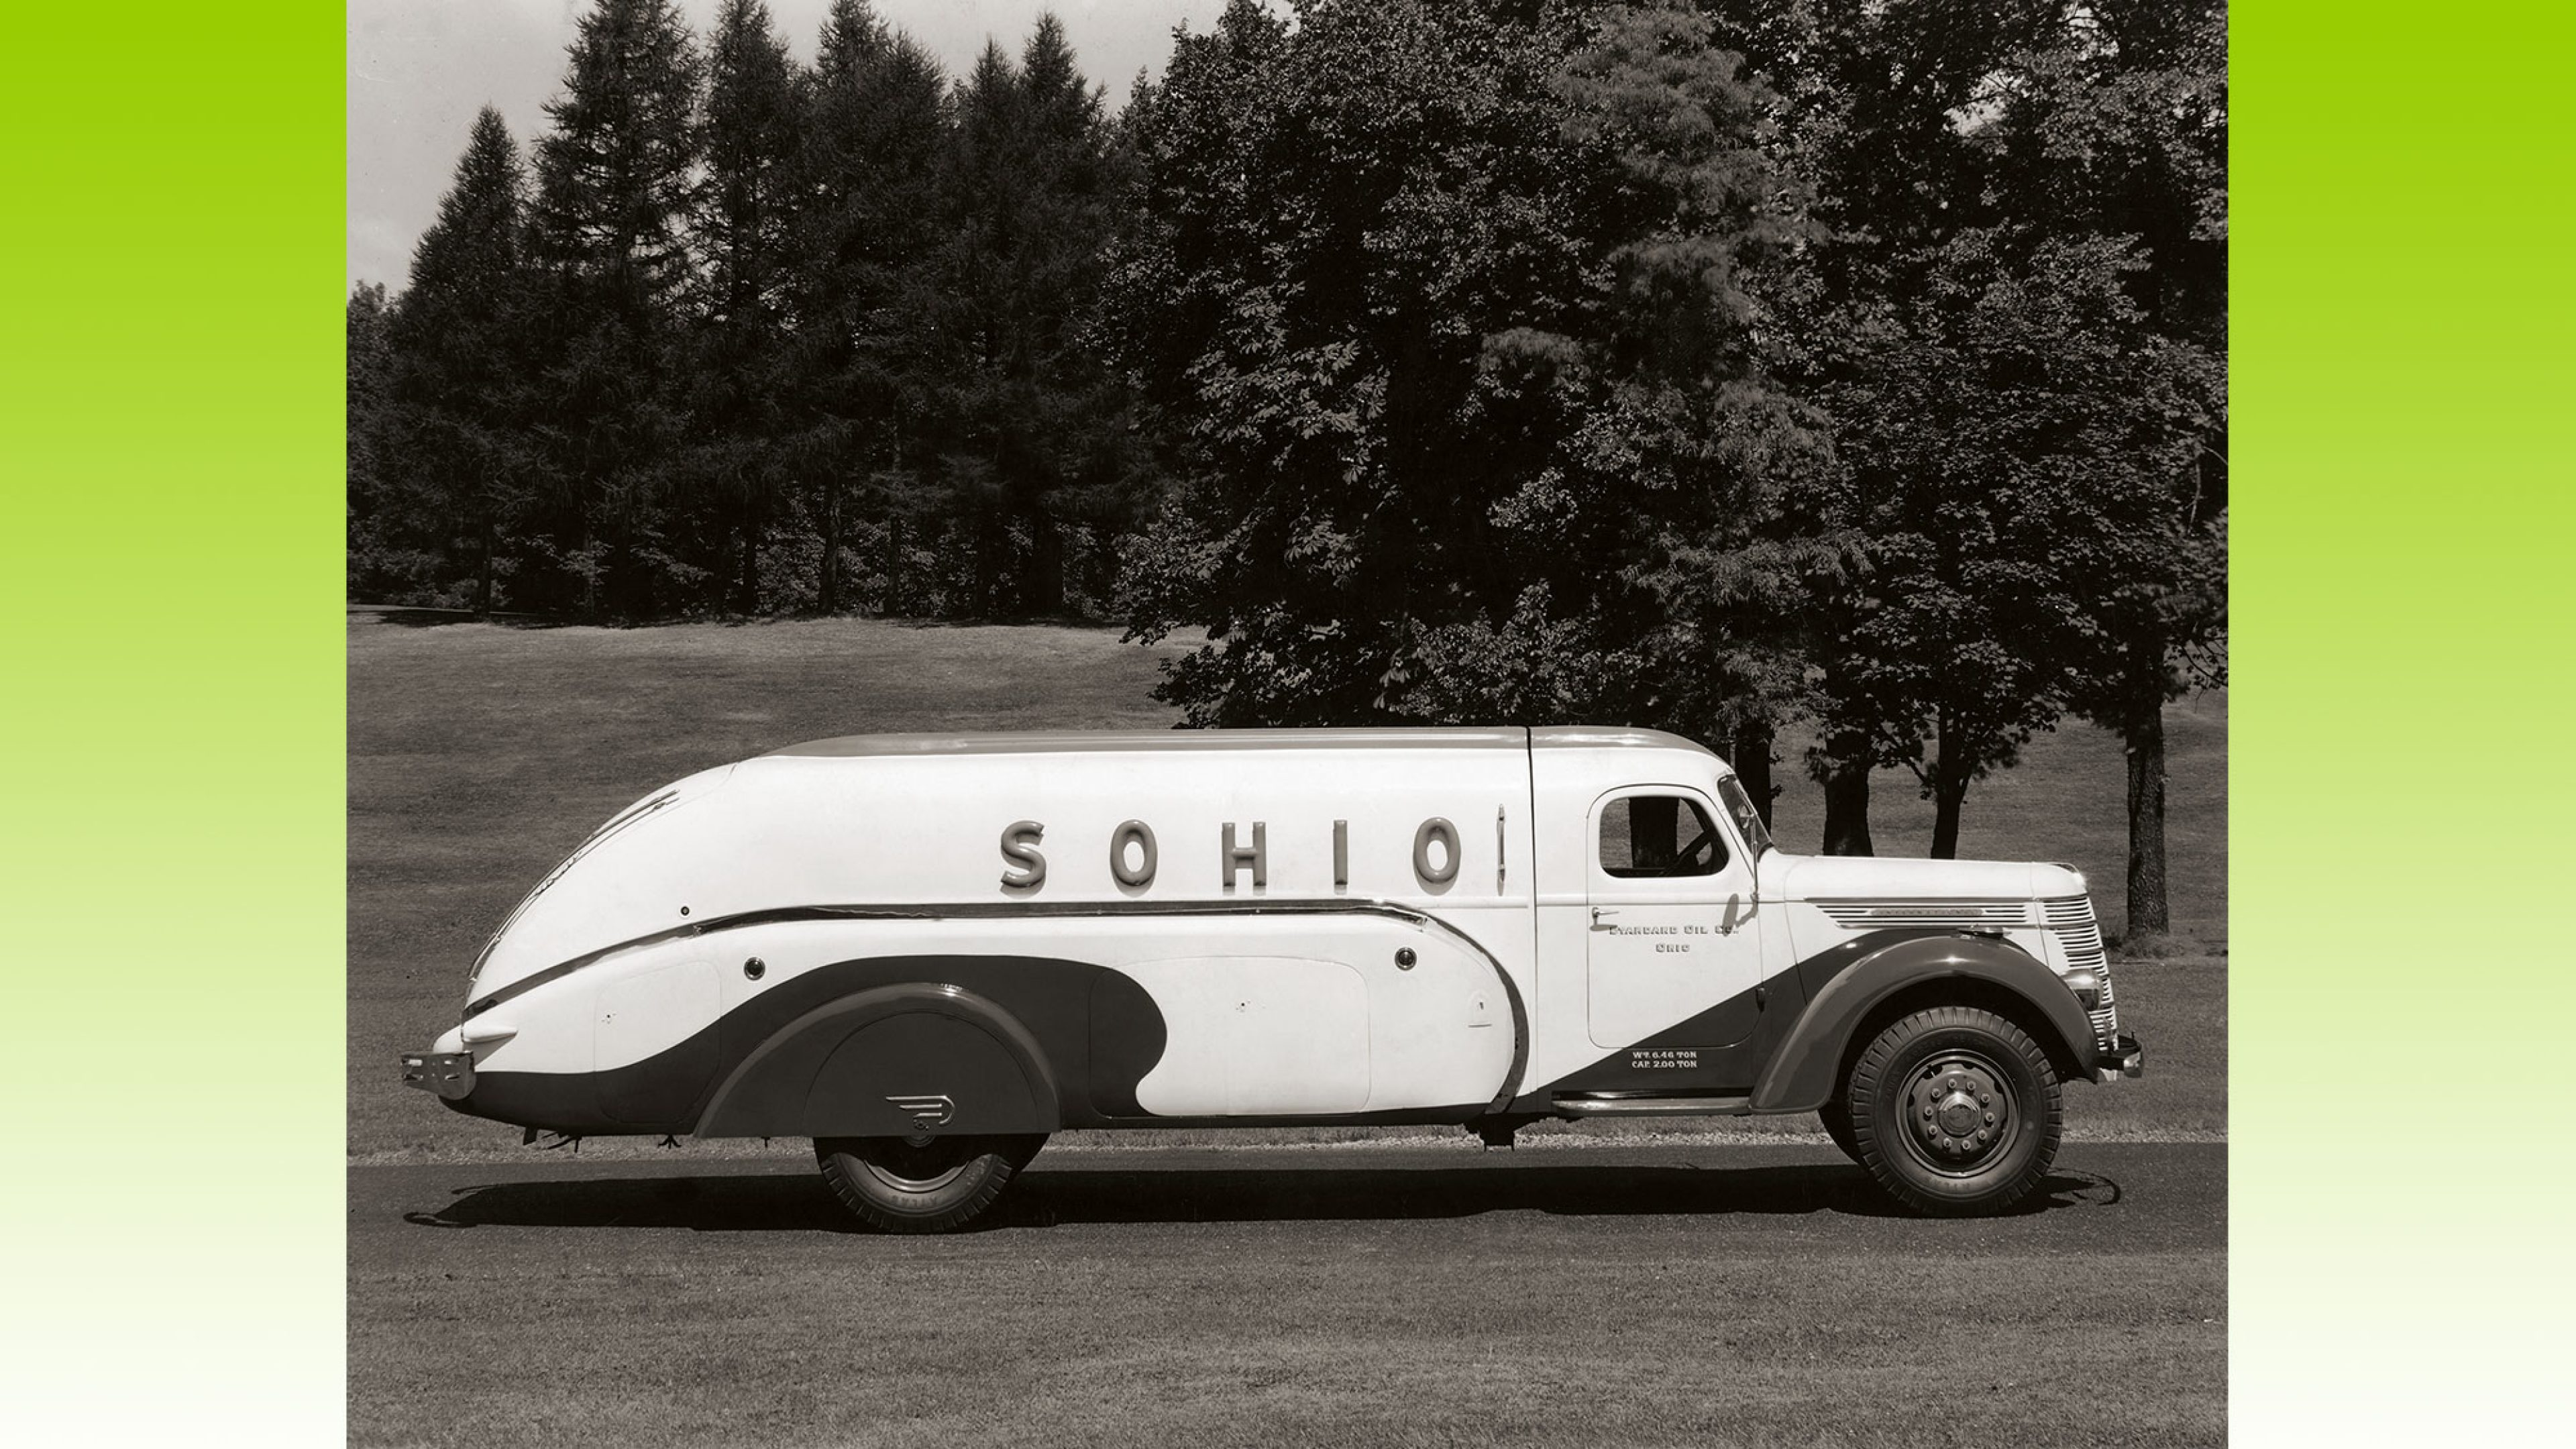 A uniquely-shaped Sohio-branded vehicle. Motorised delivery vehicles took over the transportation of oil products from horse-drawn wagons in the early 20th C